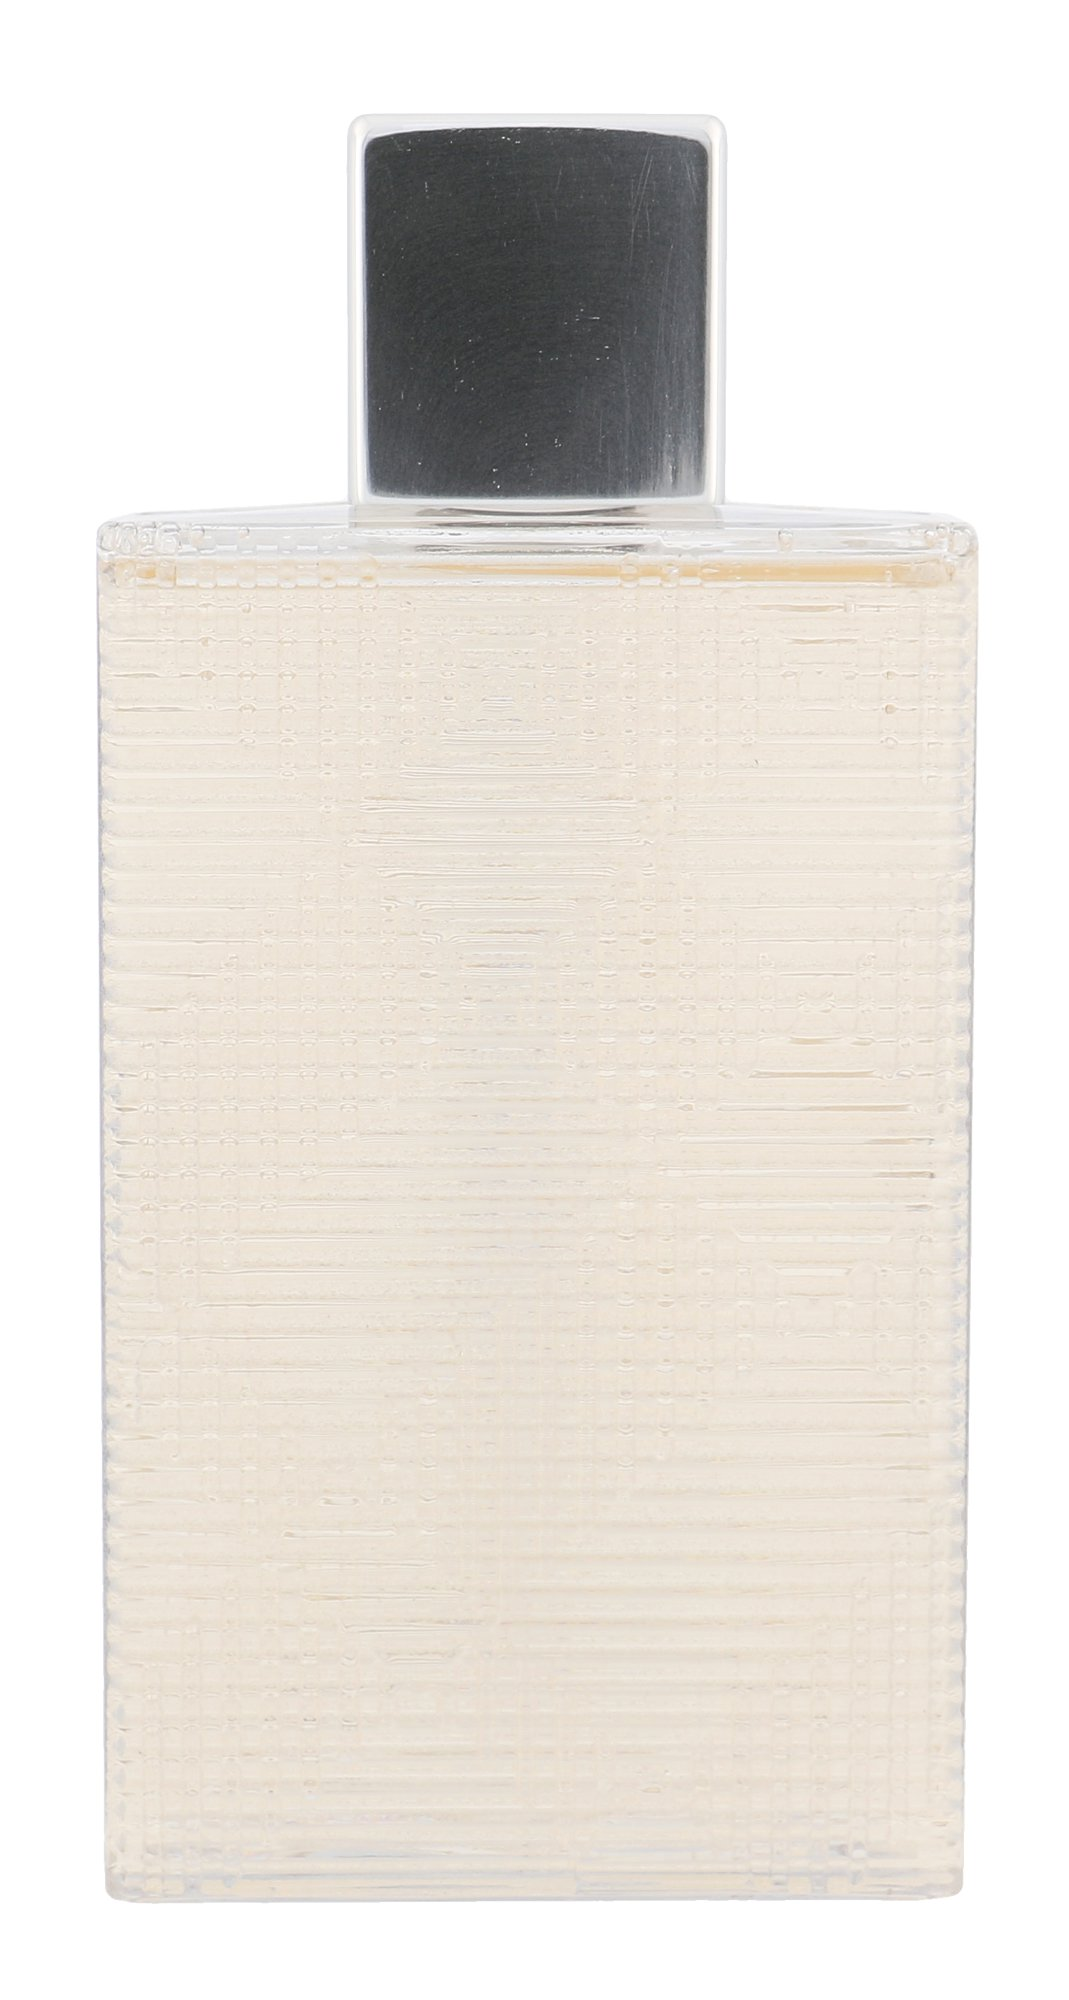 Burberry Brit for Her Rhythm, Sprchovací gél 150ml - For Her